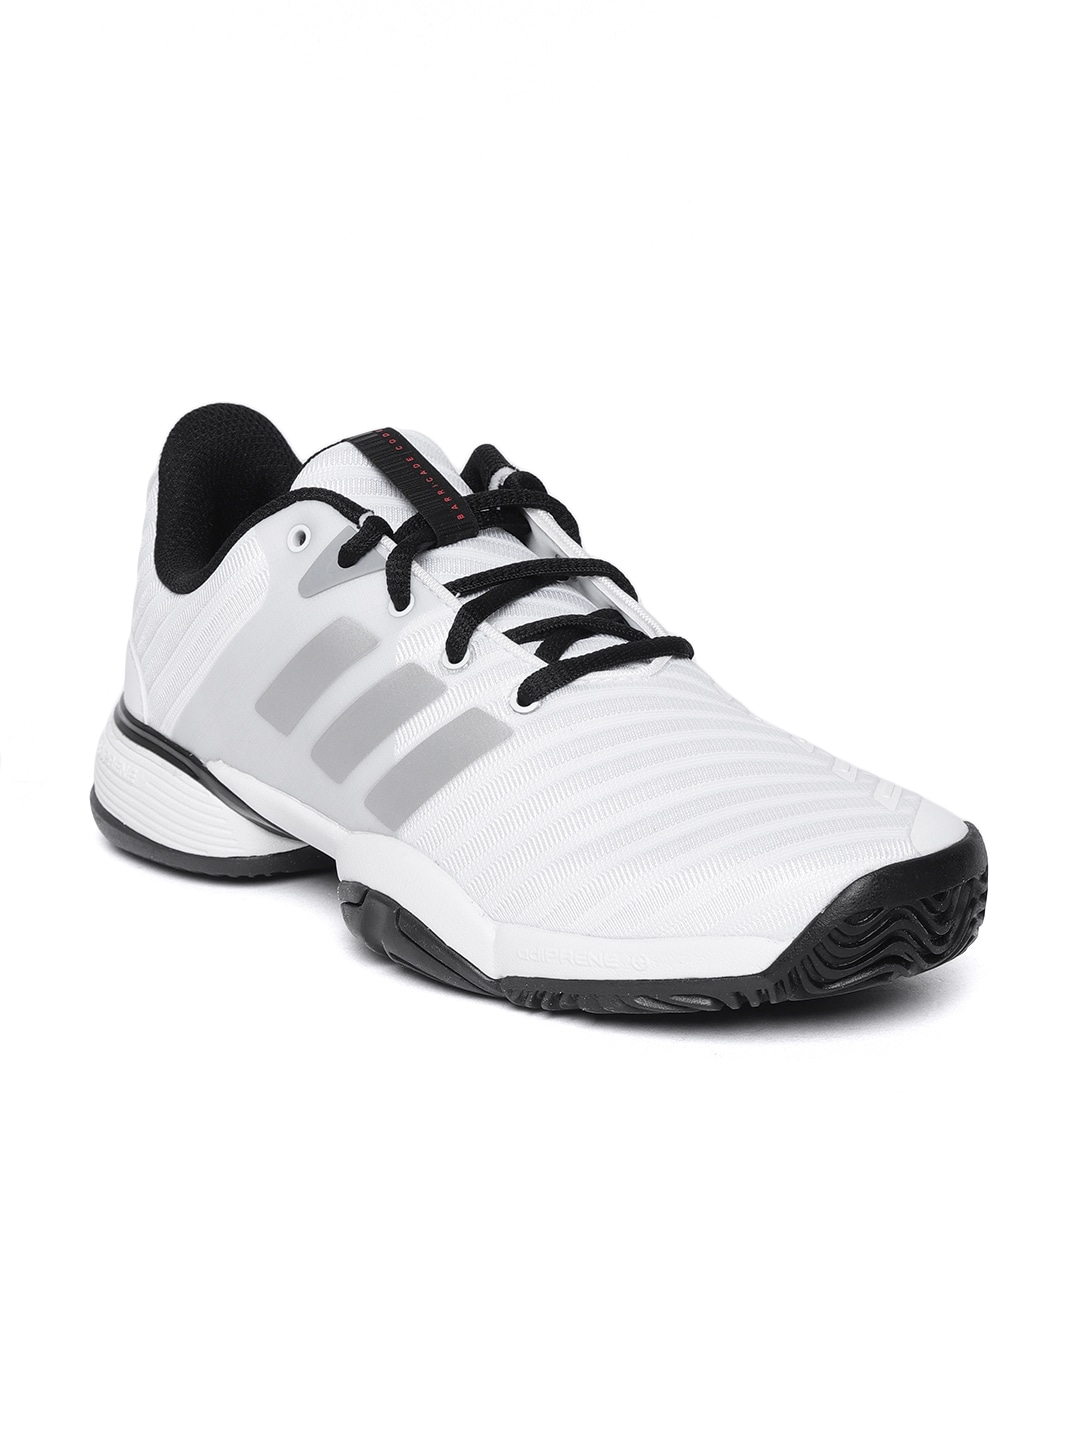 9815f6503f063e Adidas Barricade Skirts Sports Shoes - Buy Adidas Barricade Skirts Sports Shoes  online in India